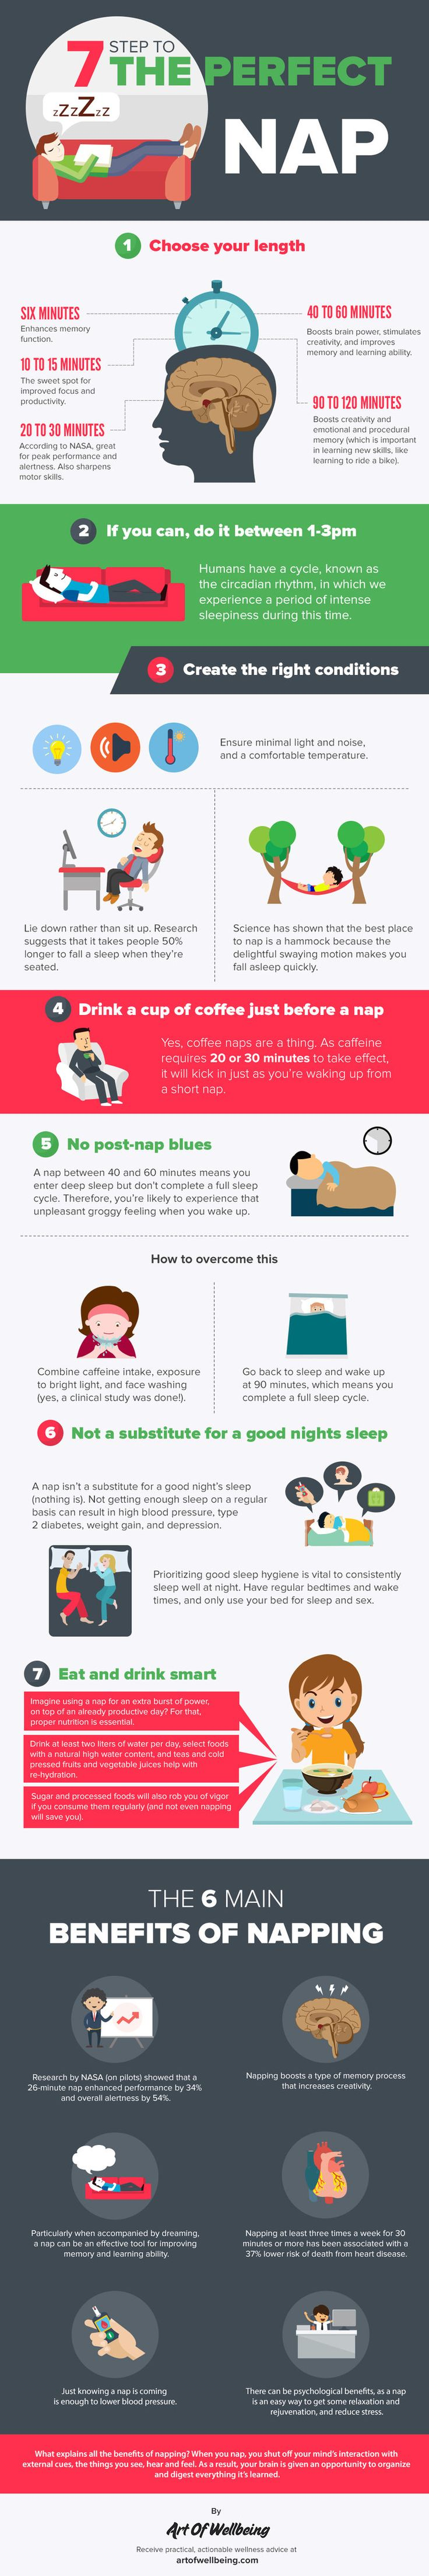 This shows how the length of our naps can affect different parts of our brain and its functions and ways to take naps to help our brain functions